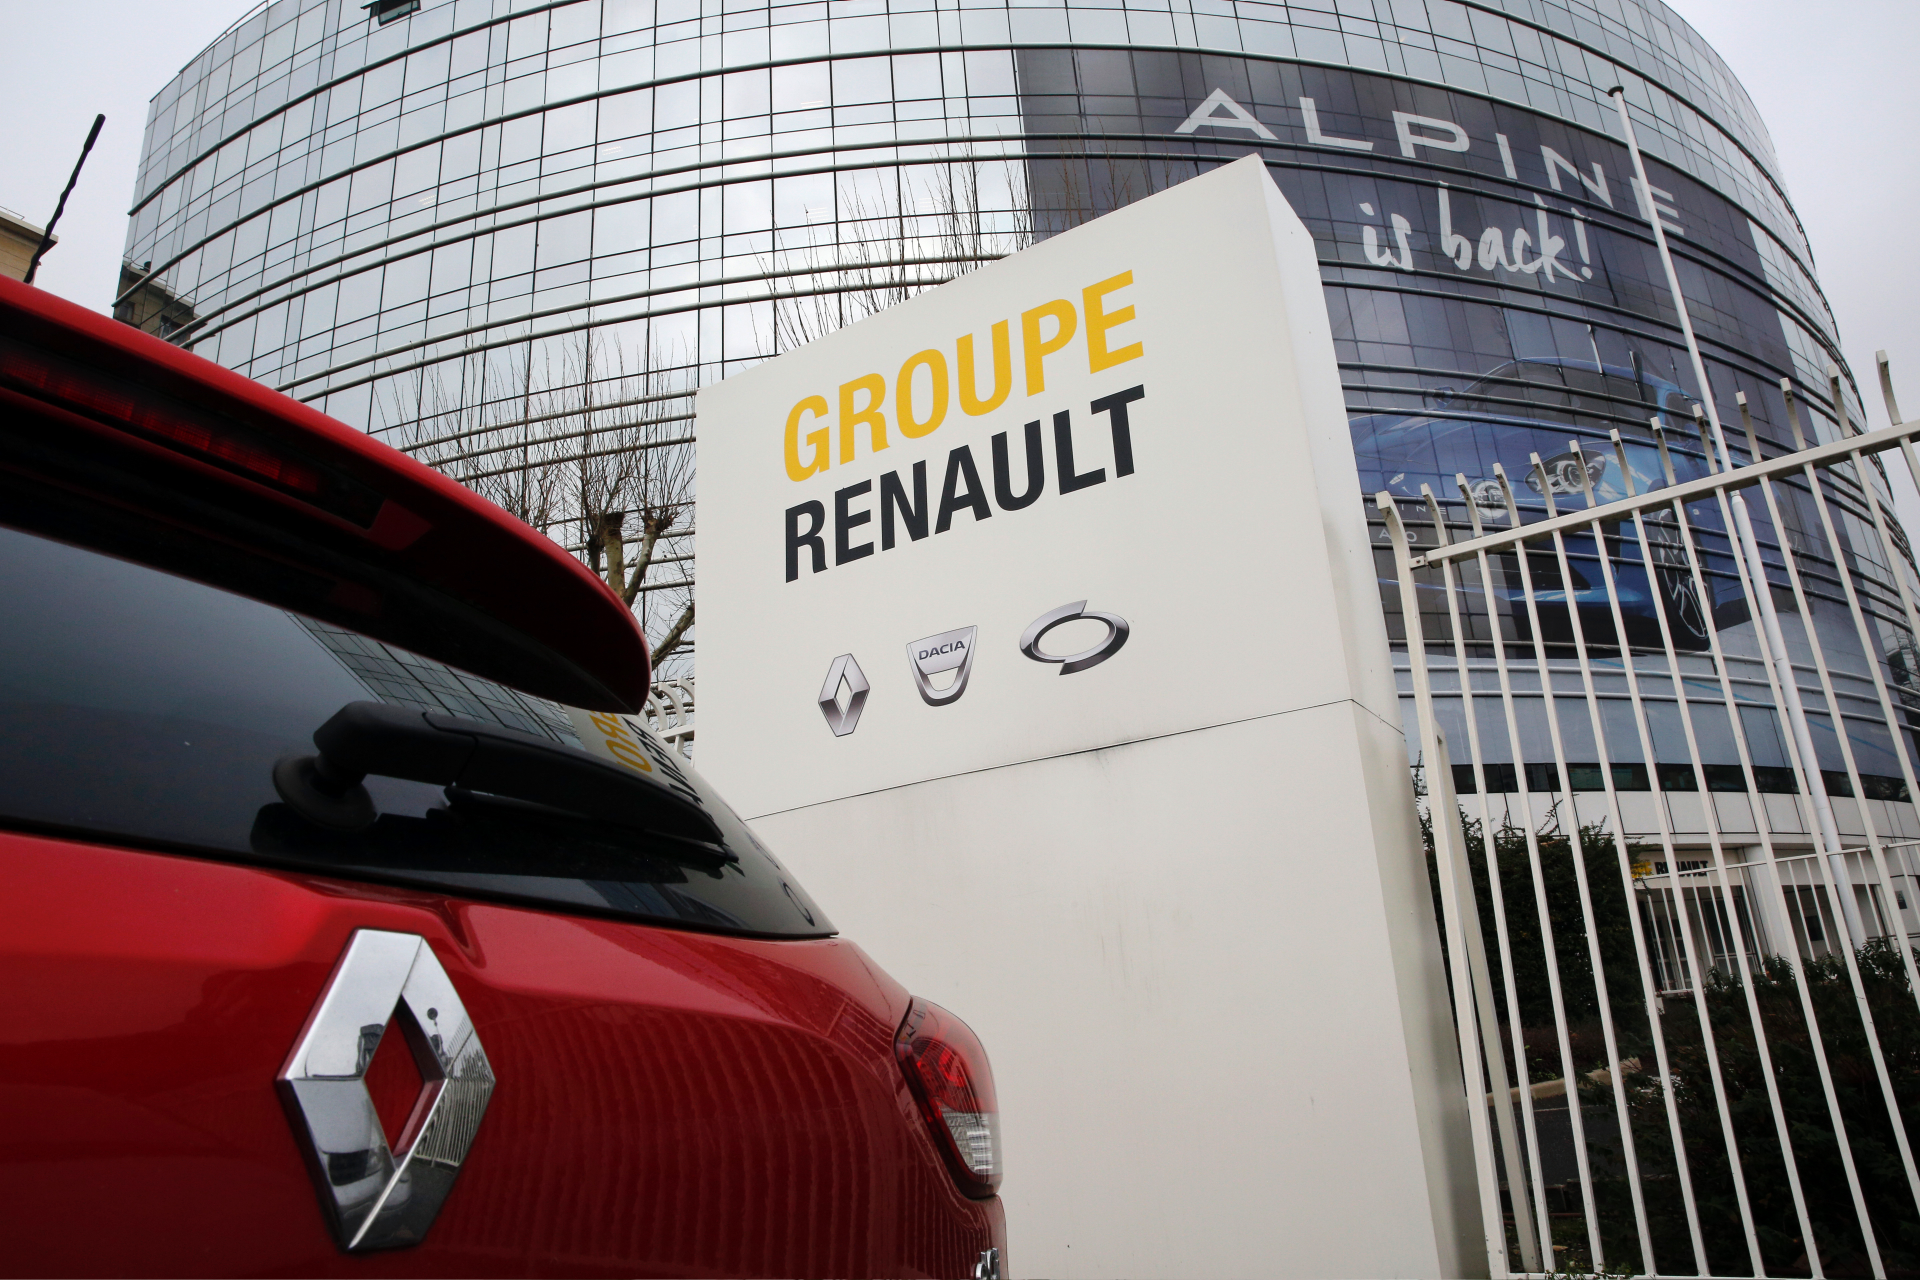 Westlake Legal Group ContentBroker_contentid-f833e48374e64fea8c87372cccf4ed55 French government: No rush for Renault-Fiat Chrysler merger Paris fox-news/world/world-regions/europe fox-news/world fnc/world fnc Associated Press article 4b83b502-edcc-58e4-bc17-bbbca91fe82f